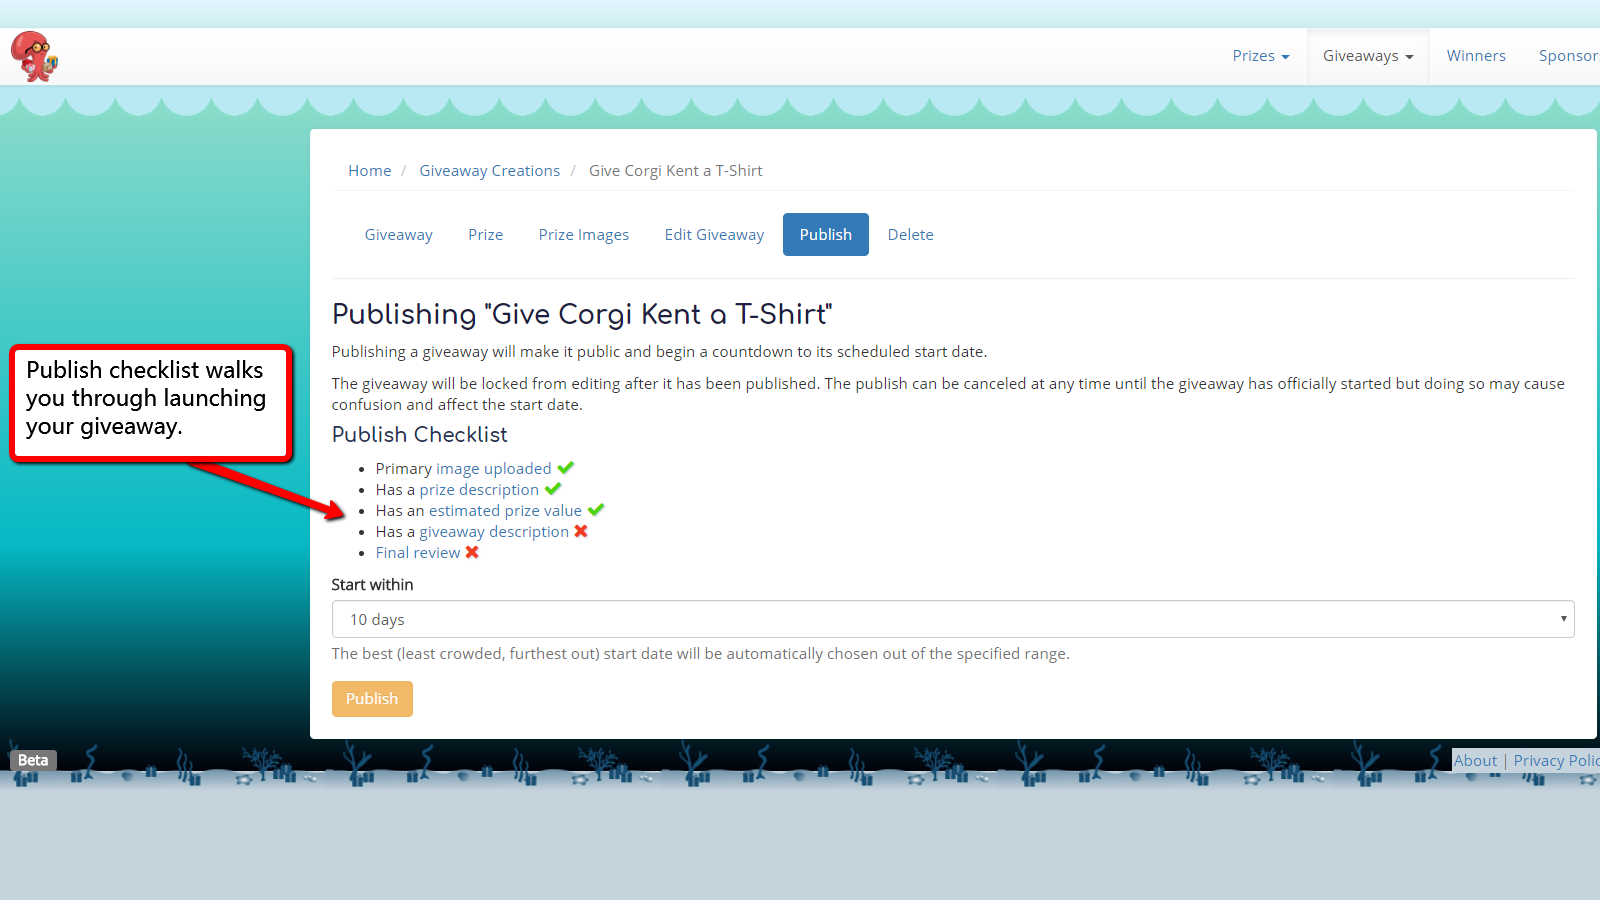 The publish checklist makes launching a giveaway easy.